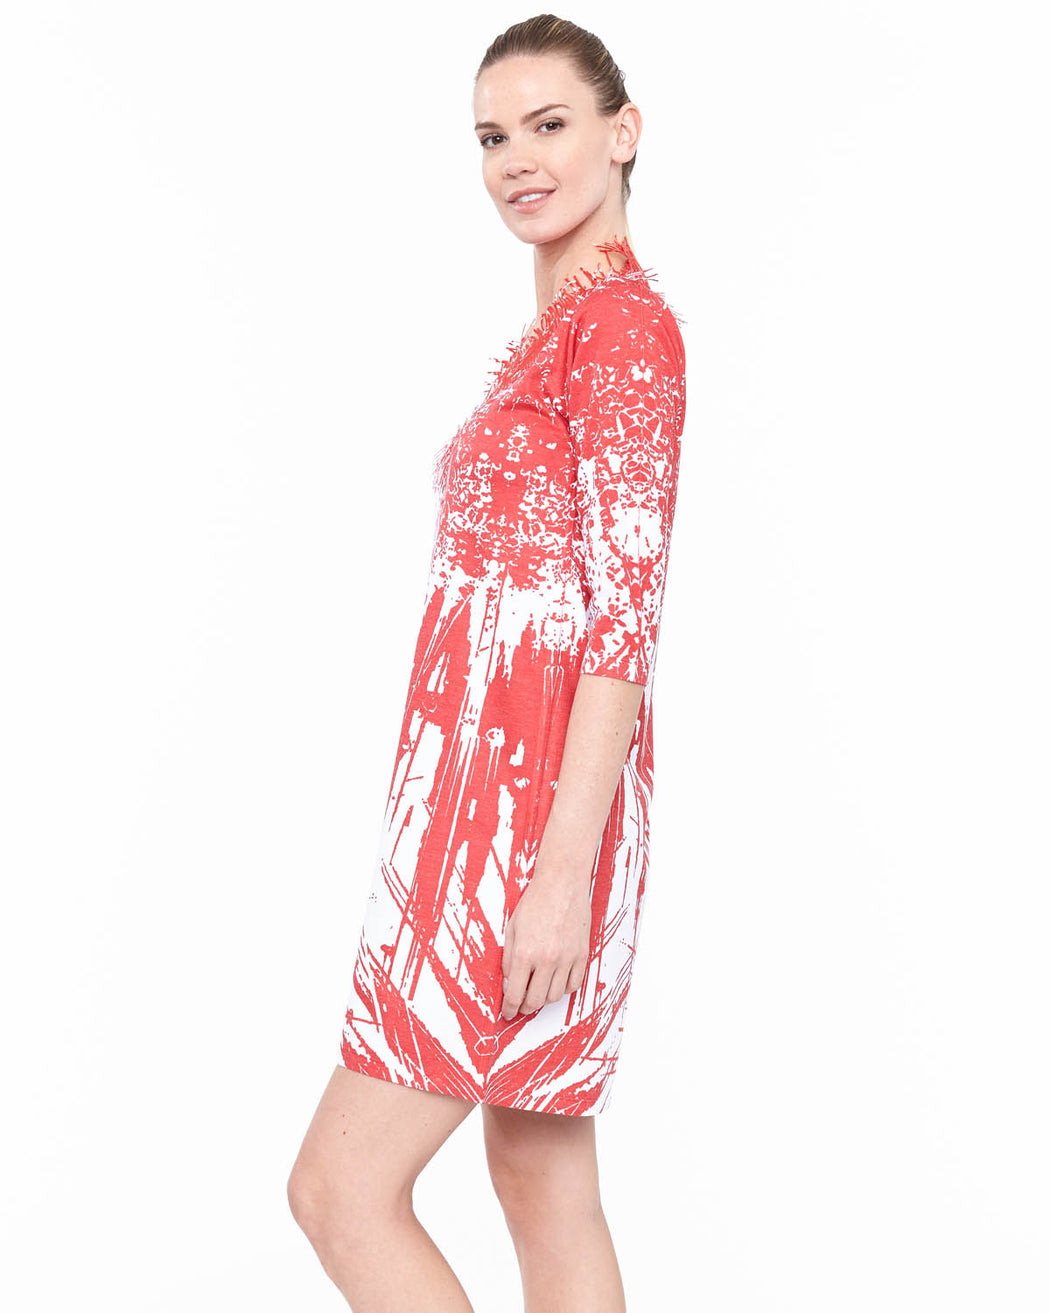 Coral Neck dress Rouge - Atelier5